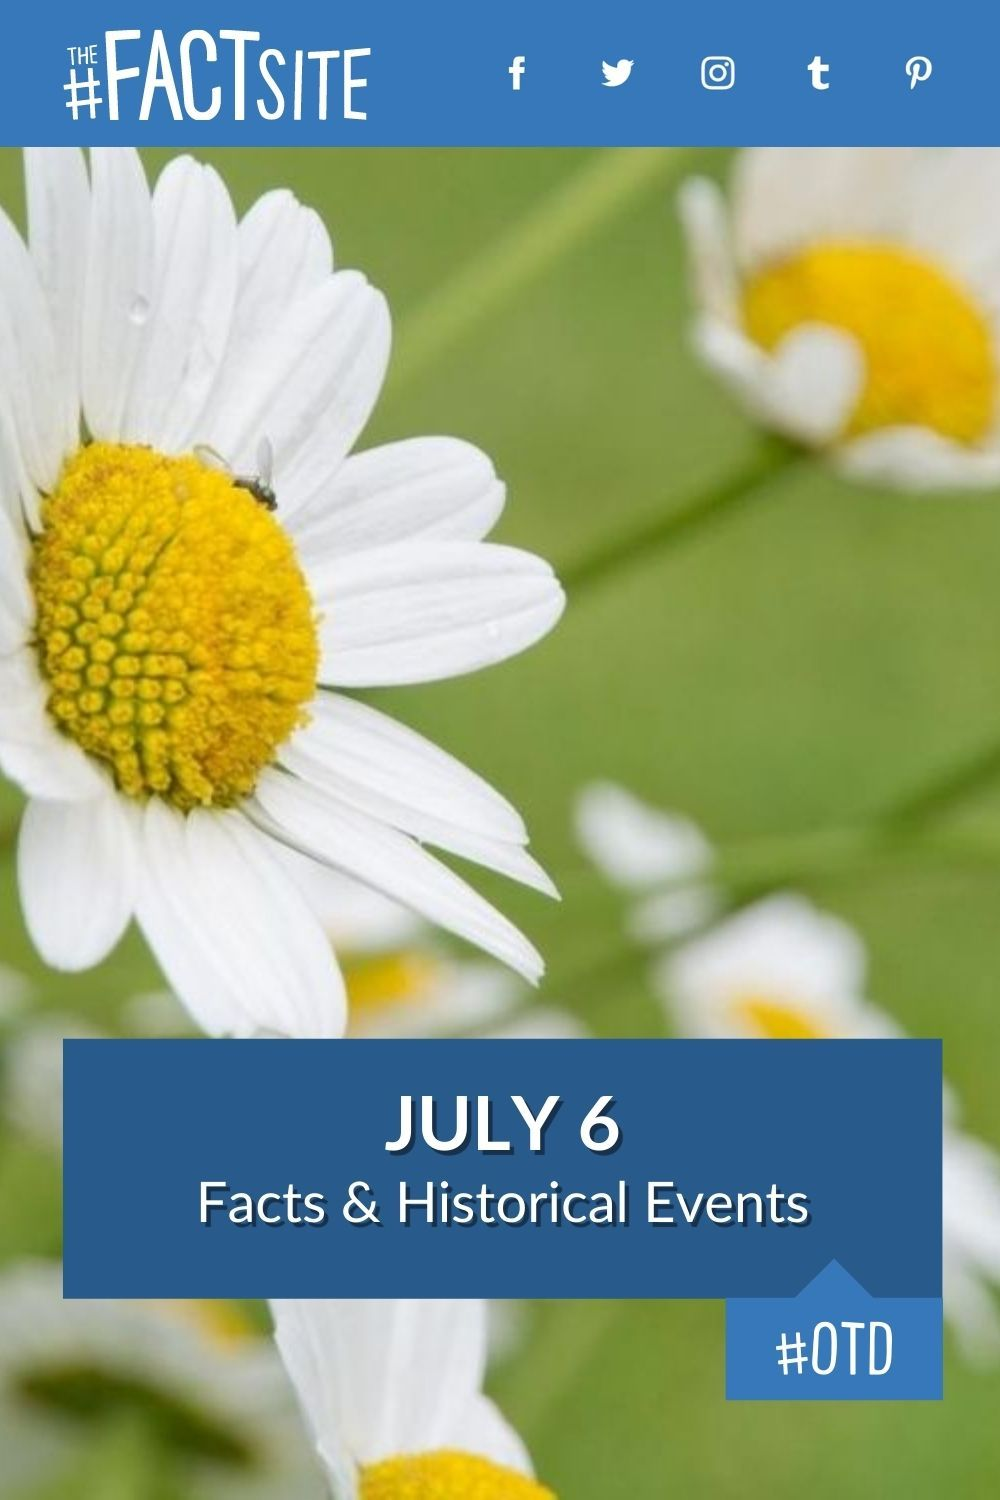 Facts & Historic Events That Happened on July 6